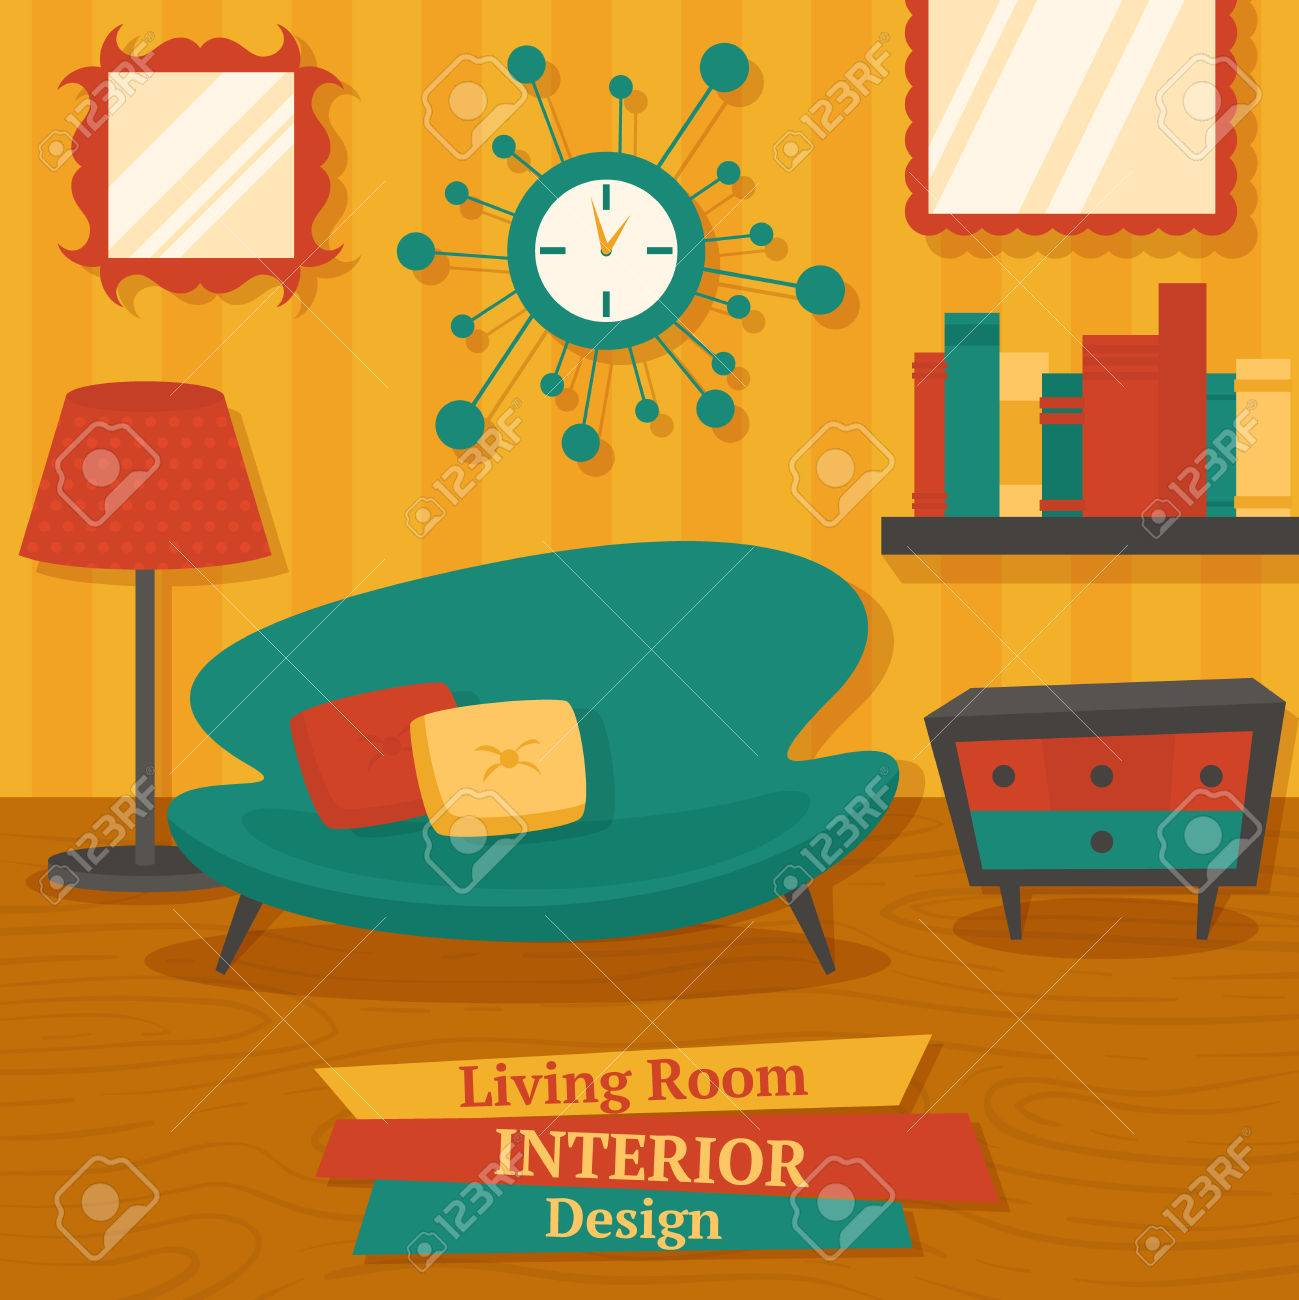 Interior Indoor Living Room Design With Sofa Lamp And Bookshelf Vector  Illustration Stock Vector   32133909